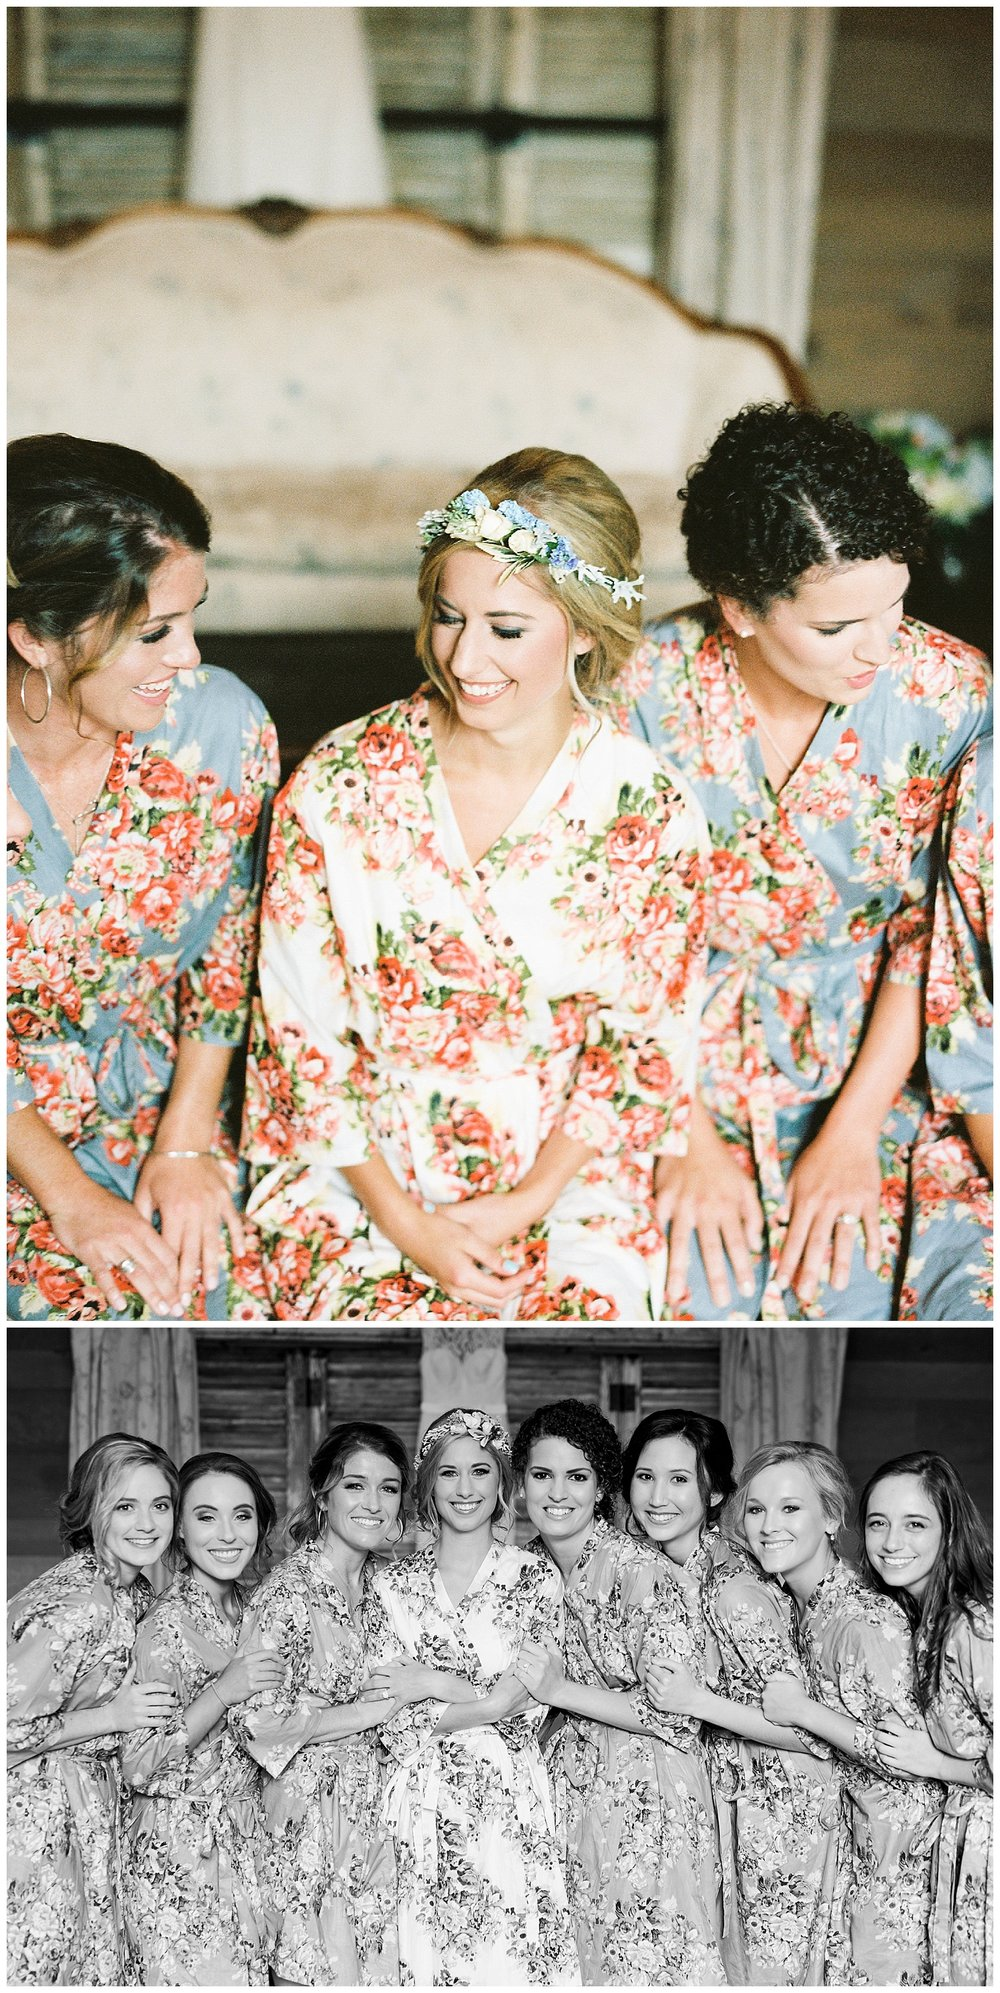 Shea chose these gorgeous floral robes for her ladies to wear on her special day! They matched the girls blue bridesmaids dresses, but were not the exact color. It created a beautiful color scheme, that matched but wasn't too matching. The girls looked so effortless in their robes as they got ready and snacked!